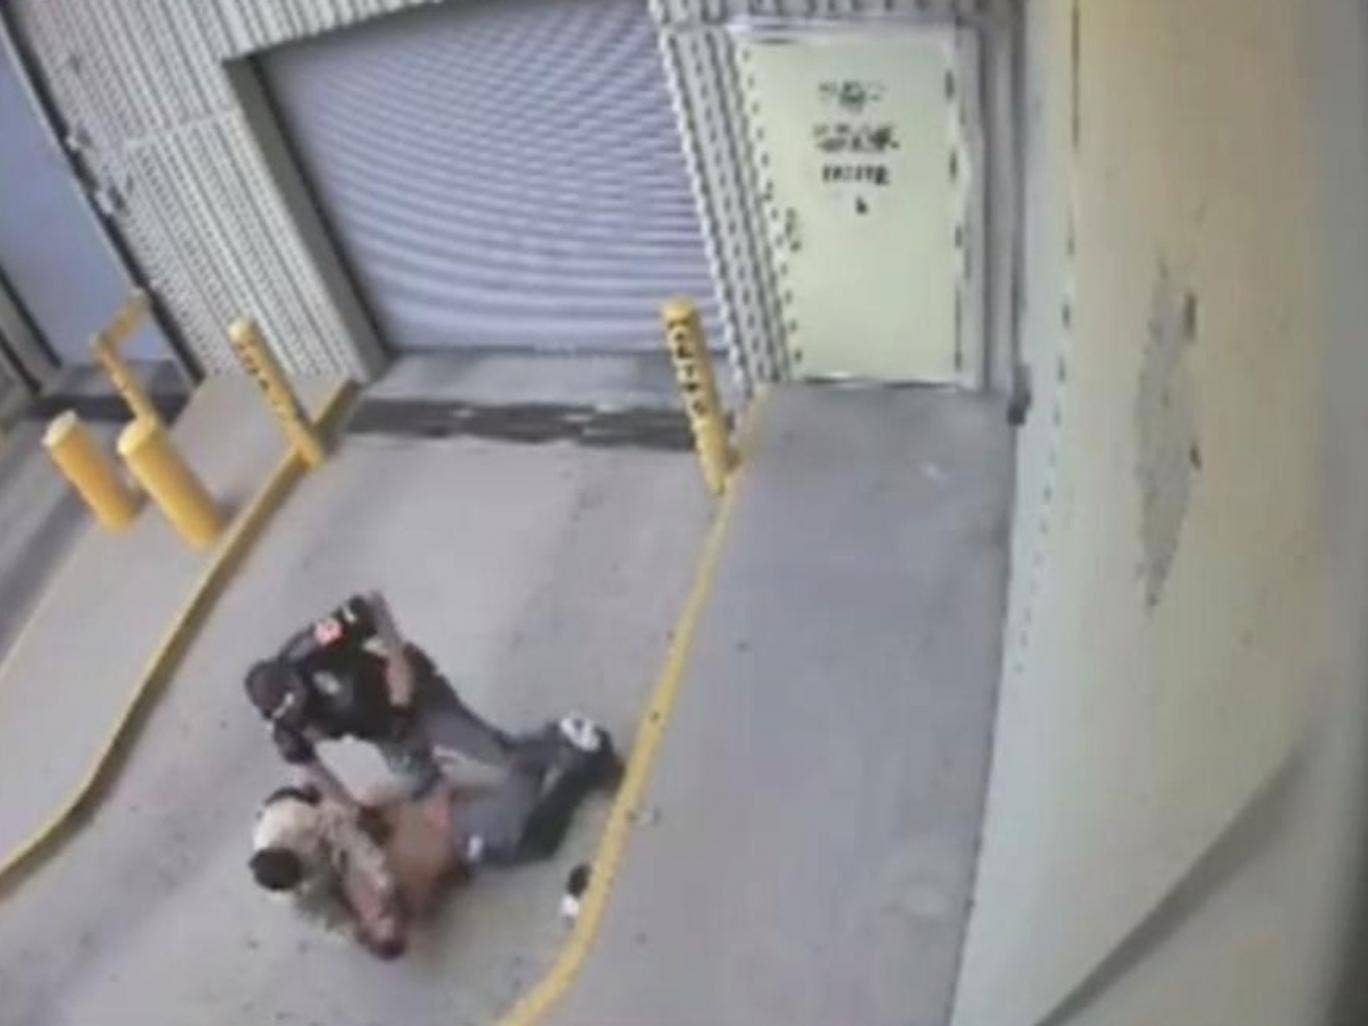 Graphic video footage has emerged of the moment a policeman shot and fatally wounded a handcuffed prisoner being restrained on the floor in El Paso City jail.